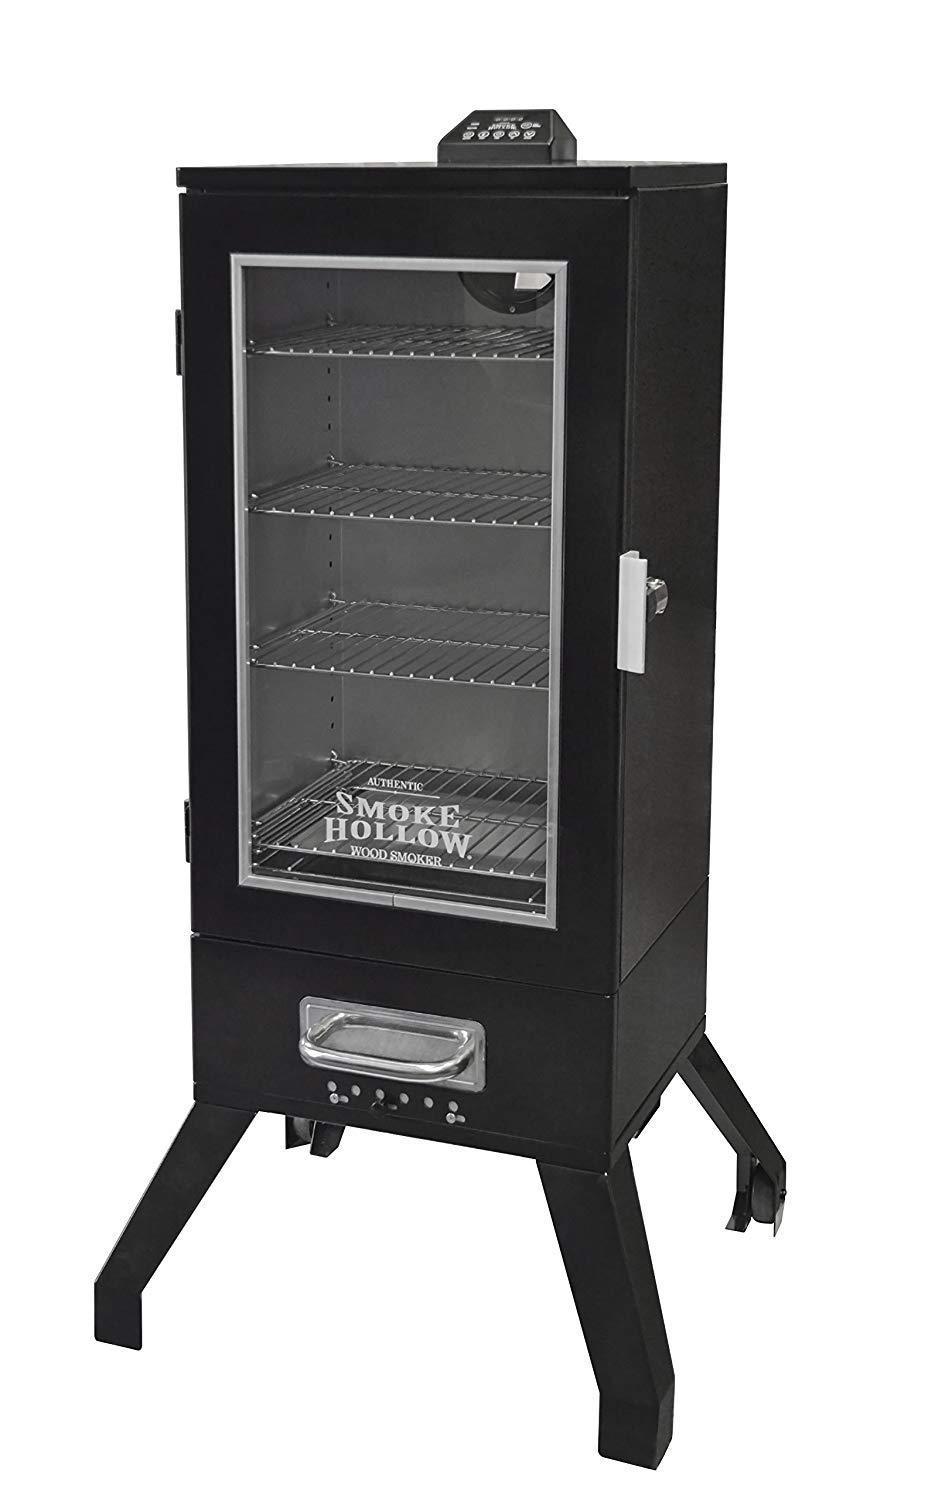 Smoke Hollow 3616DEW 36-Inch Digital Electric Smoker with Window, Black